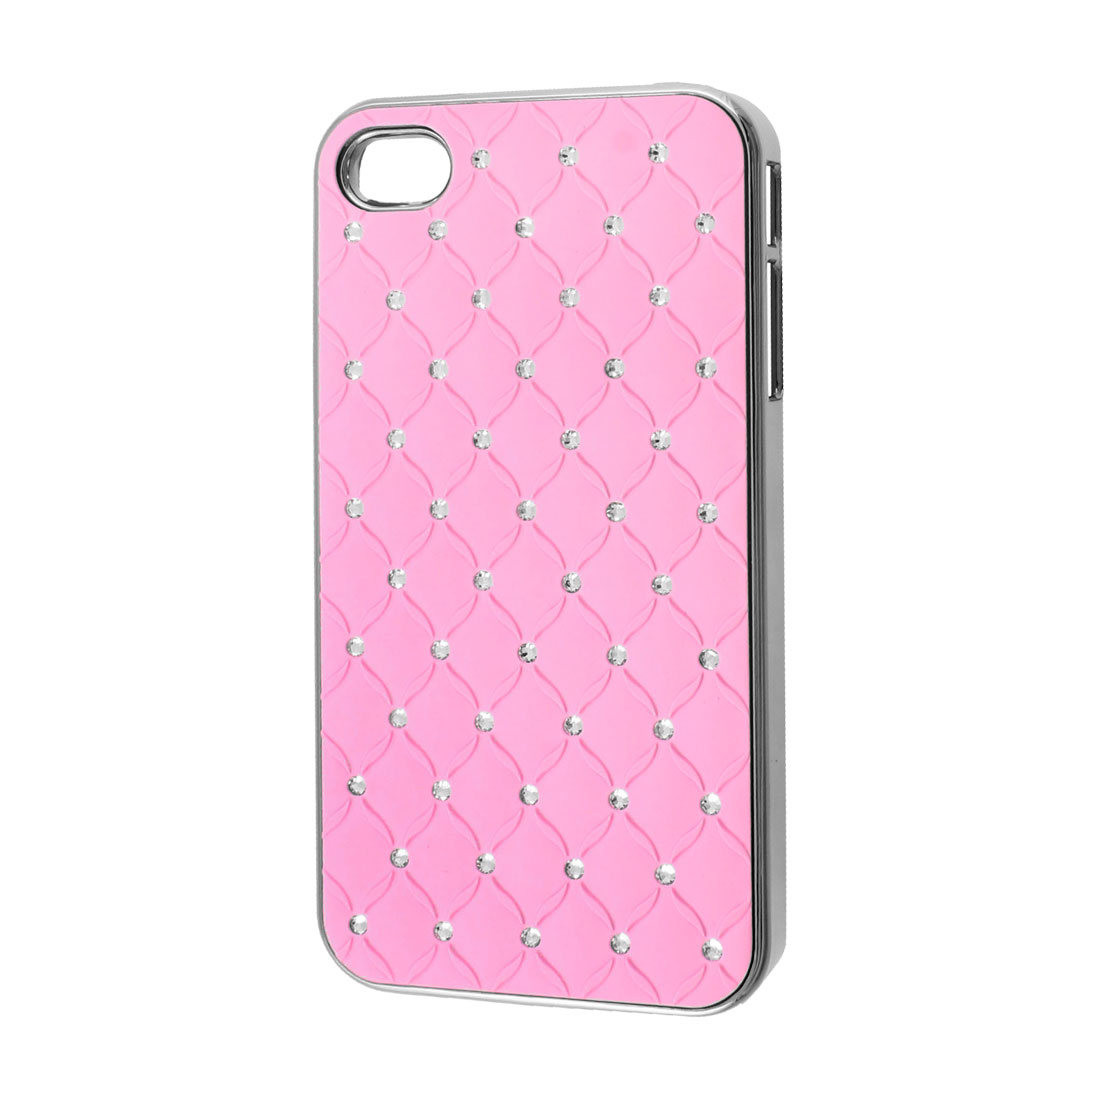 Pink Faux Leather Coated Rhinestone Hard Back Case Cover for iPhone 4 4G